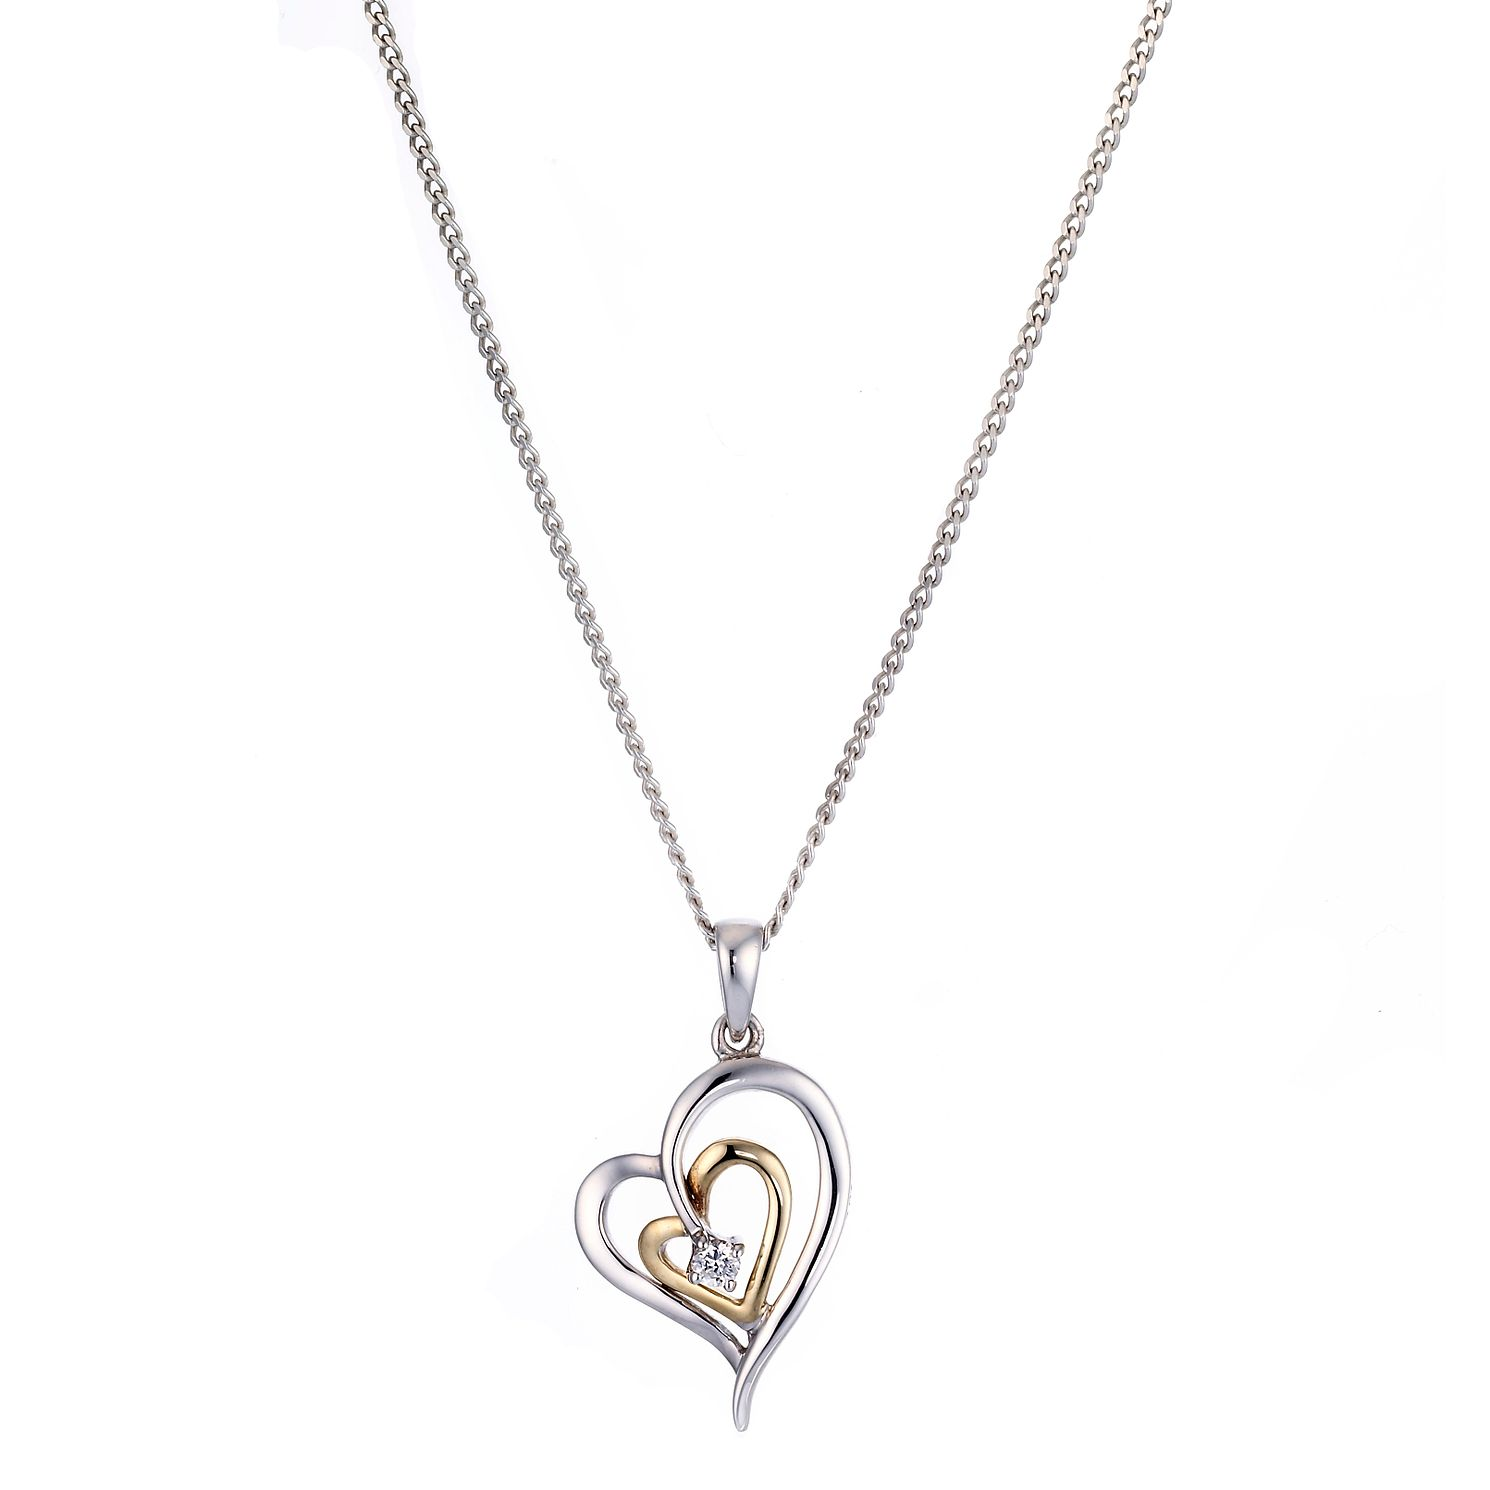 rose rg detail bj anatomic small products bjorg gold heart necklace jewellery